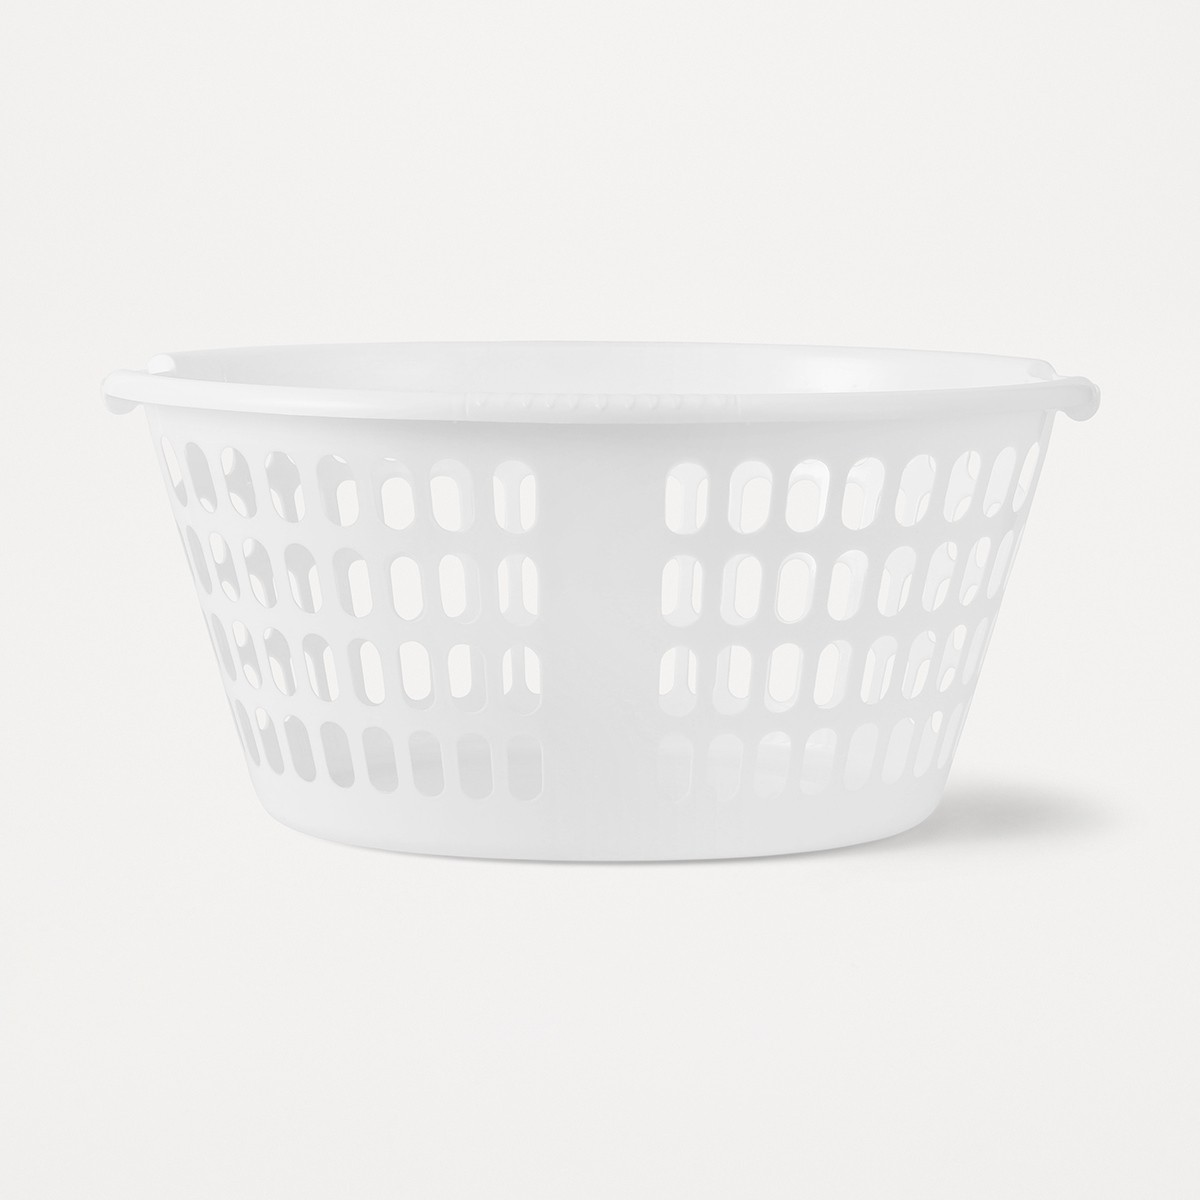 Image of Laundry Basket Oval Plastic White W/Handles